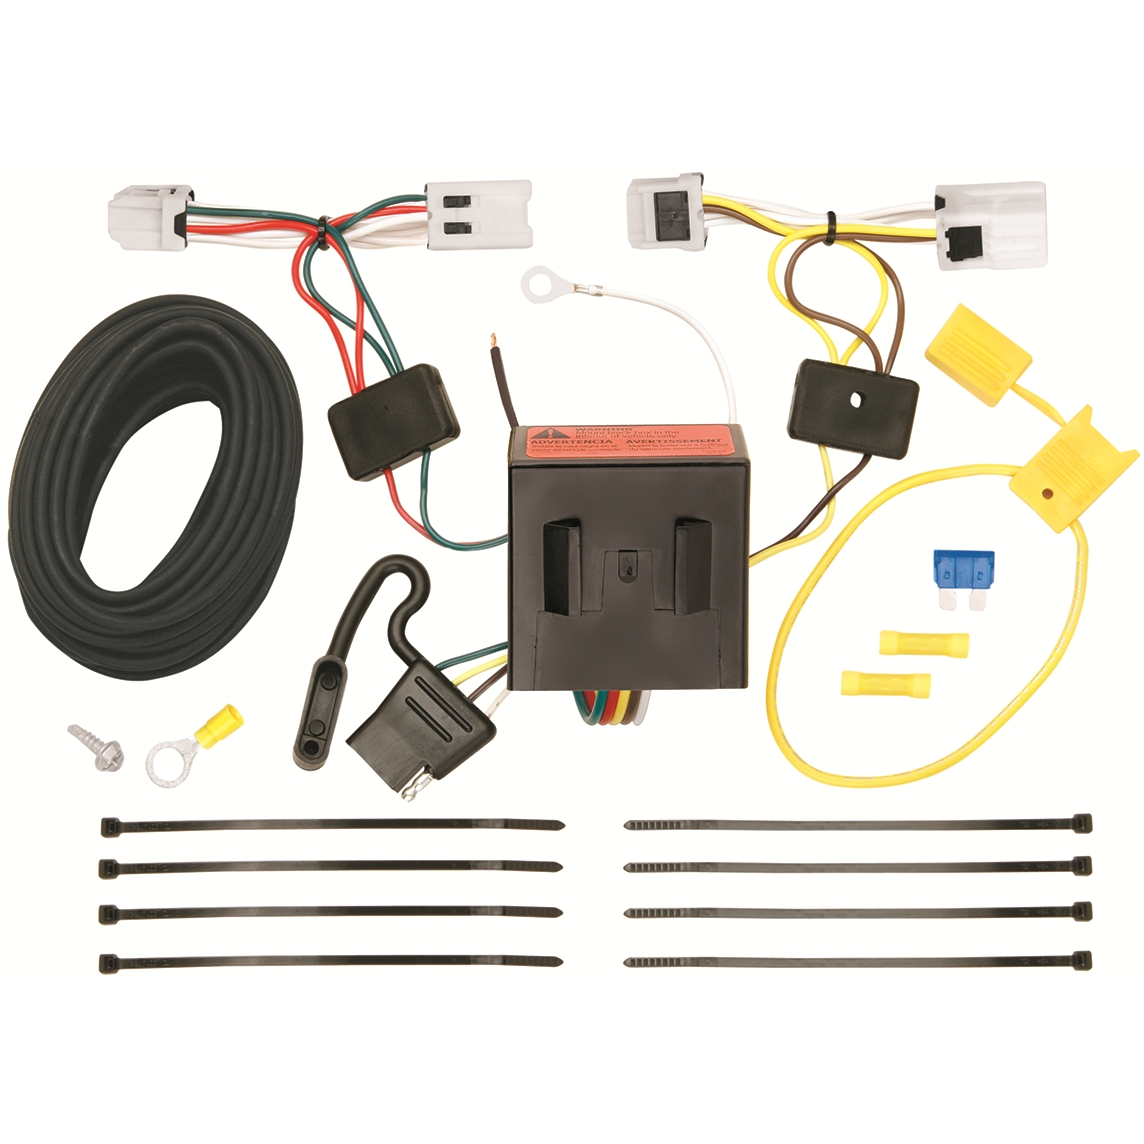 Tow Hitch Wiring Harness Diagram 19962000 Toyota Rav4 Reese Tconnector 78025 118553 T One Trailer For Nissan Nv 2012 Ebay Install Schematic